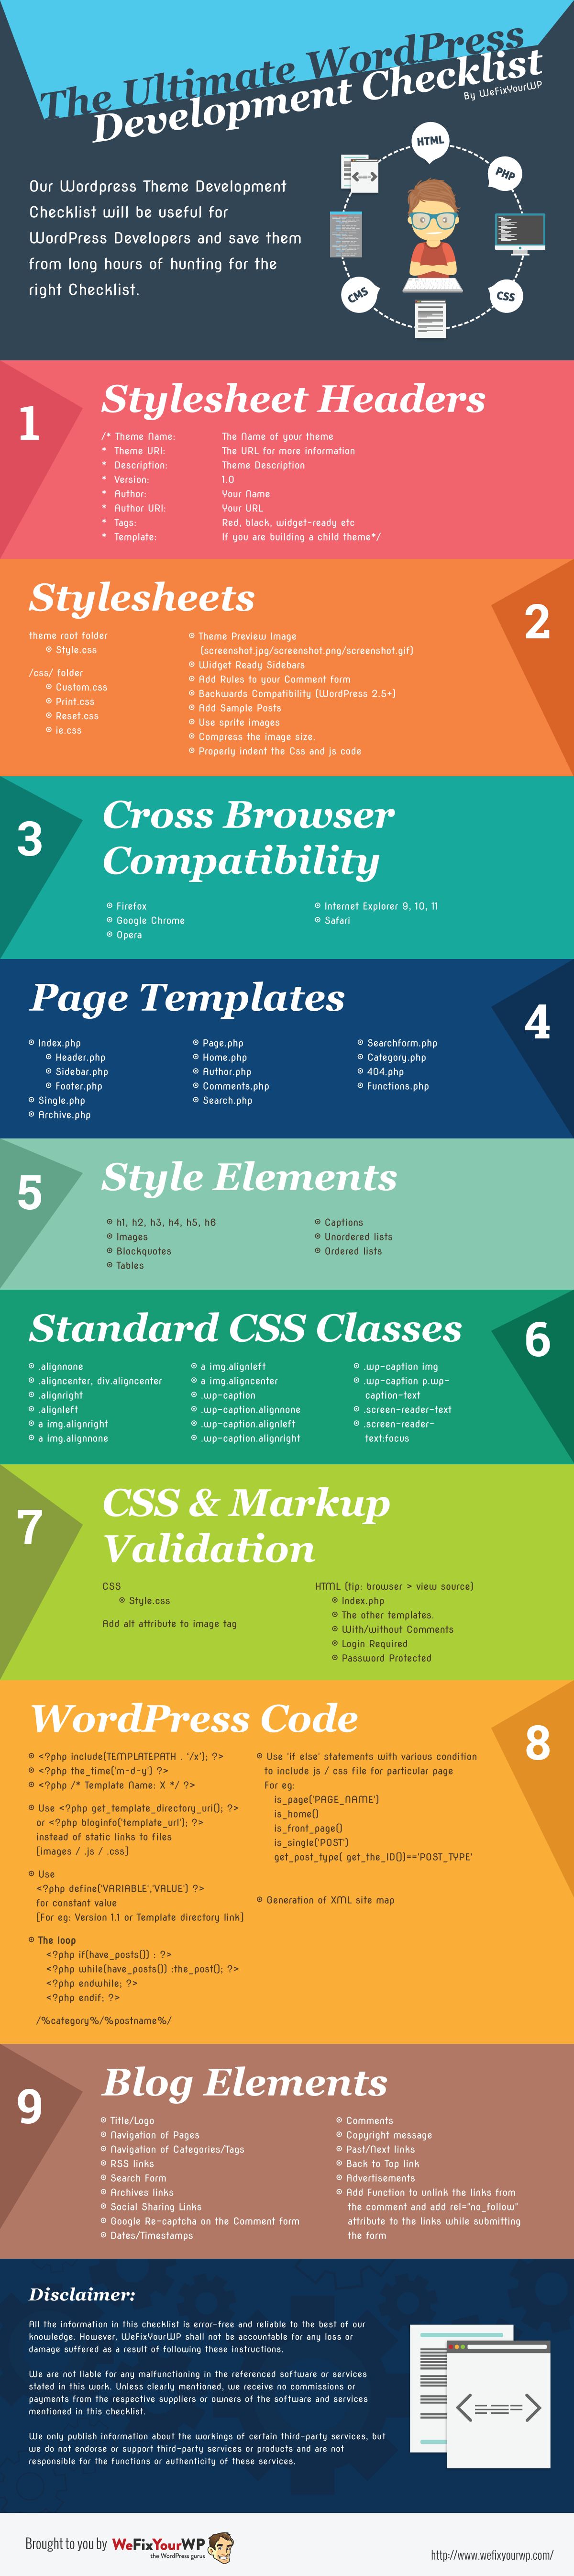 wordpress Development checklist infographic